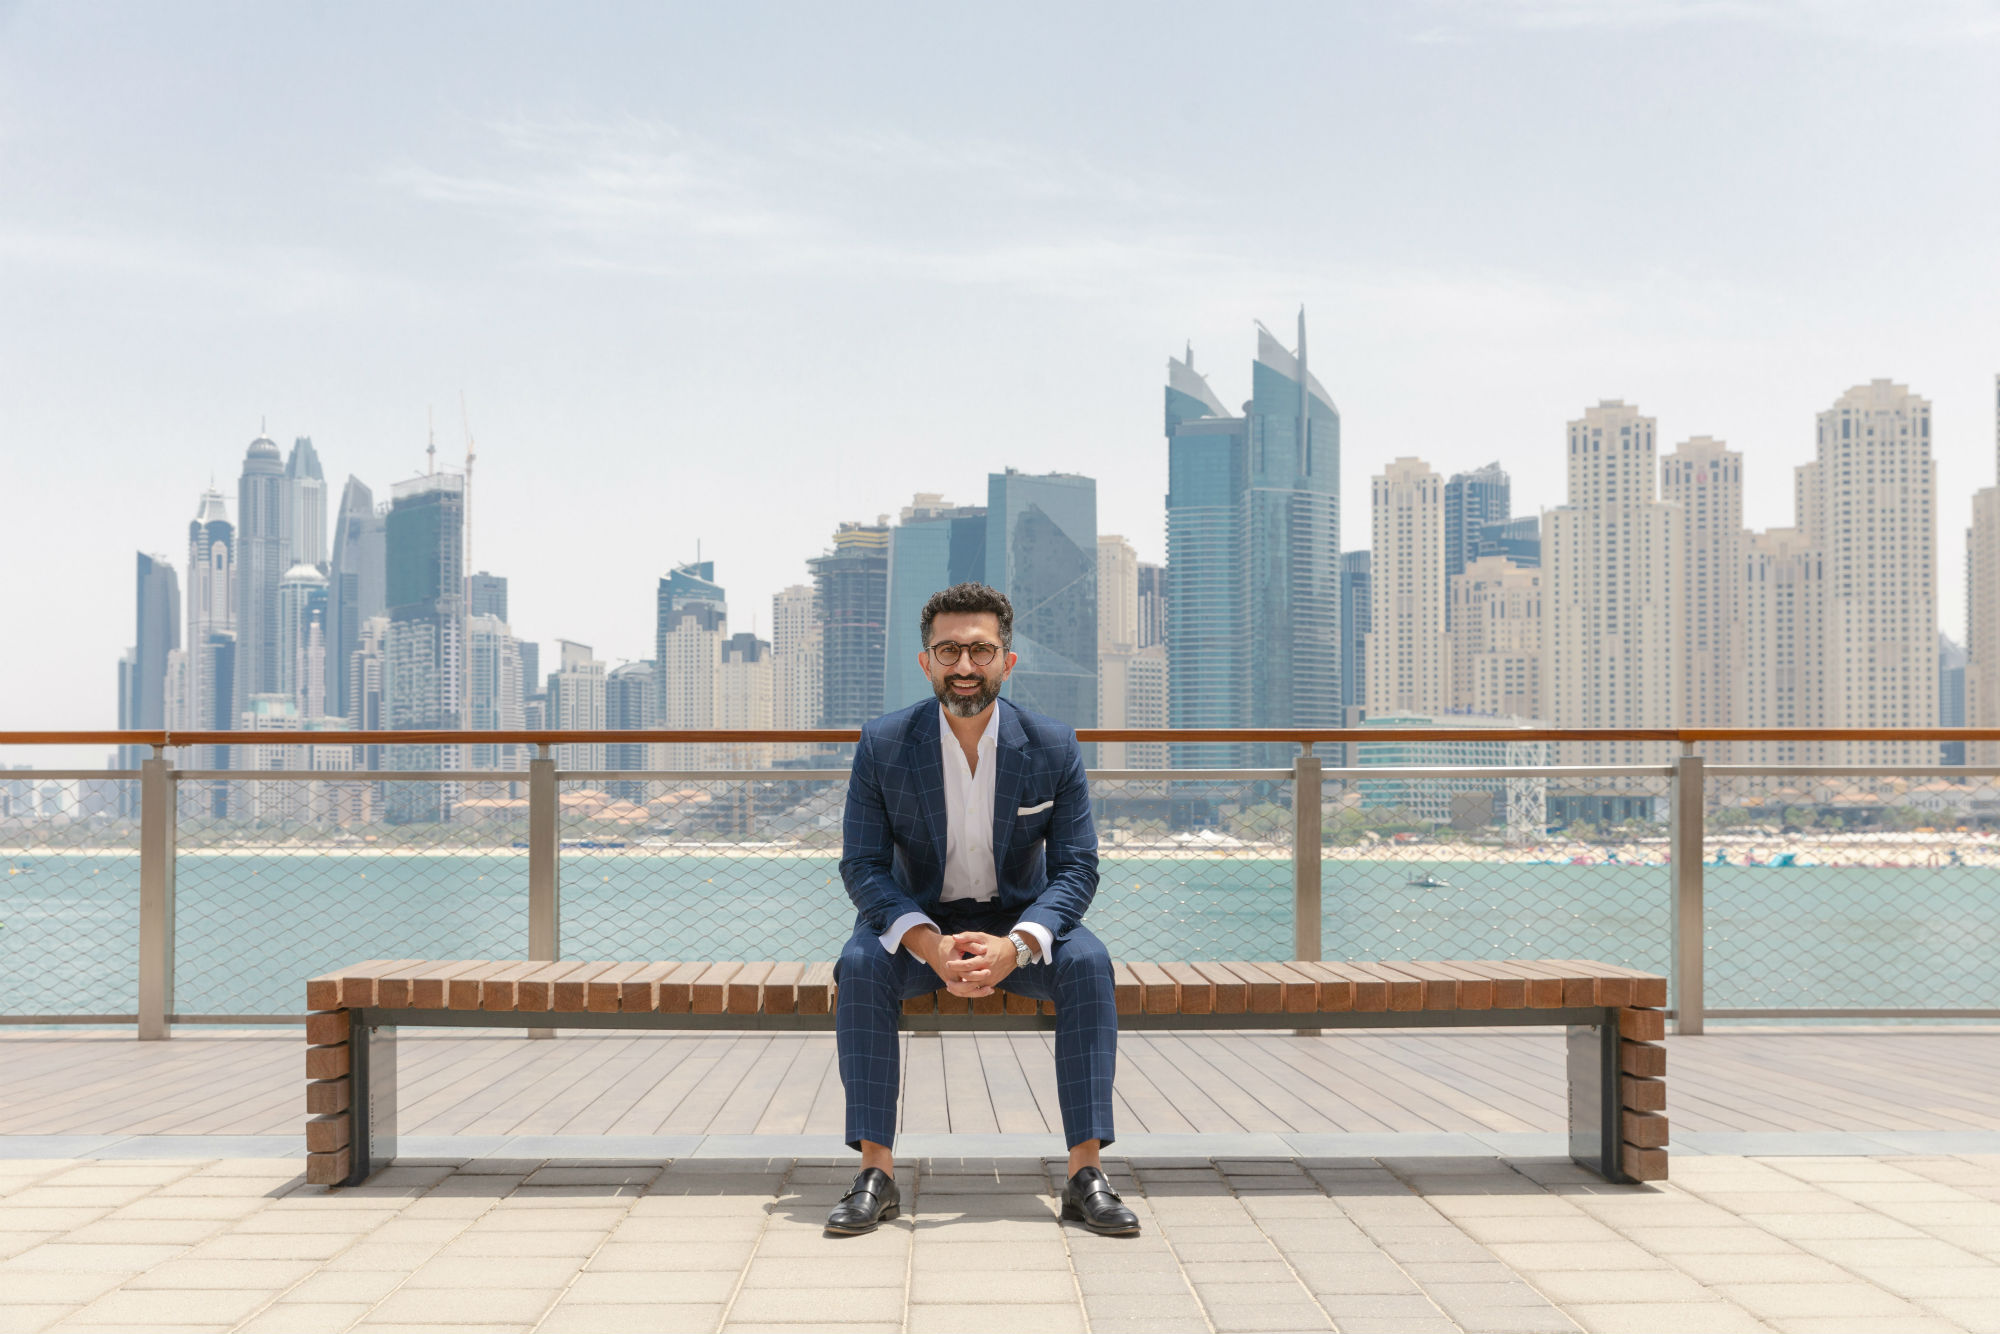 Dr Hamid Haqparwar shares what he's learned during his time at BMW